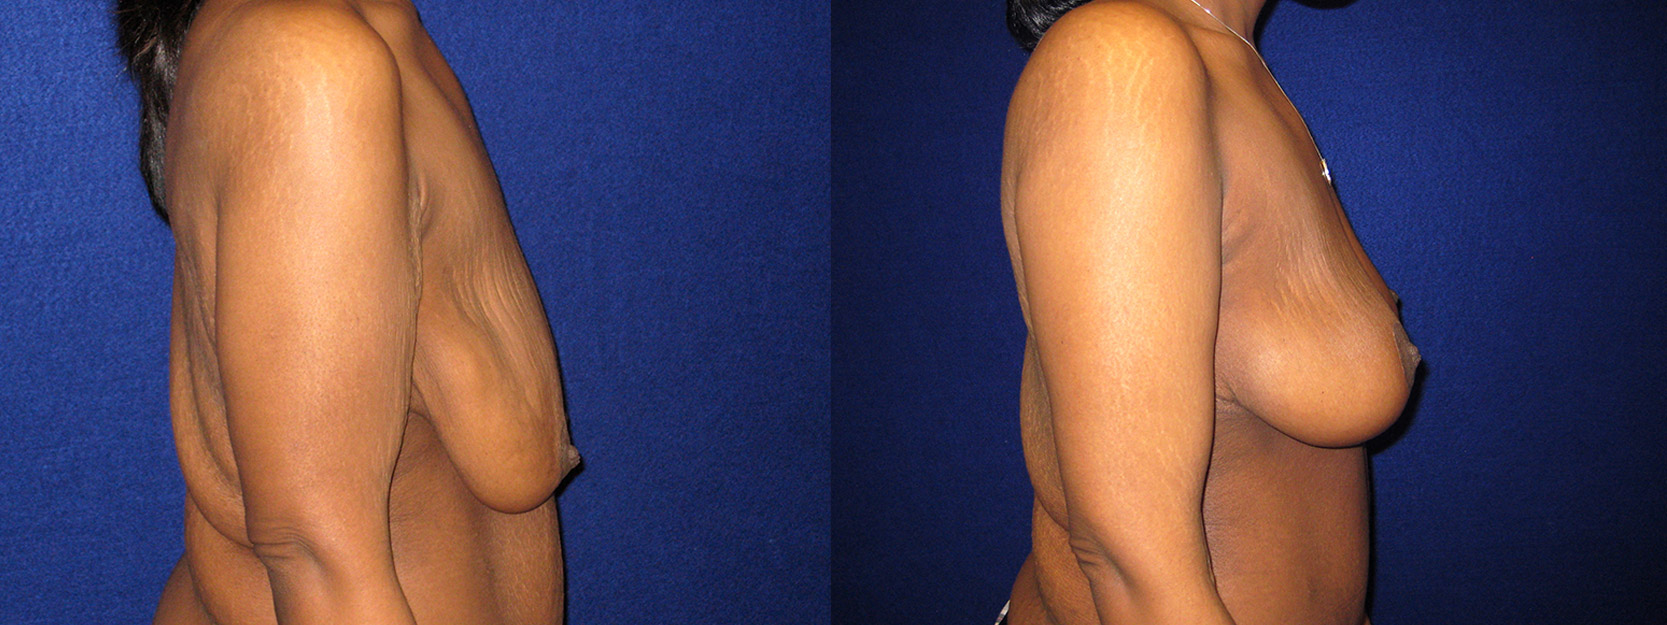 Right Profile View - Breast Lift and Arm Lift After Massive Weight Loss